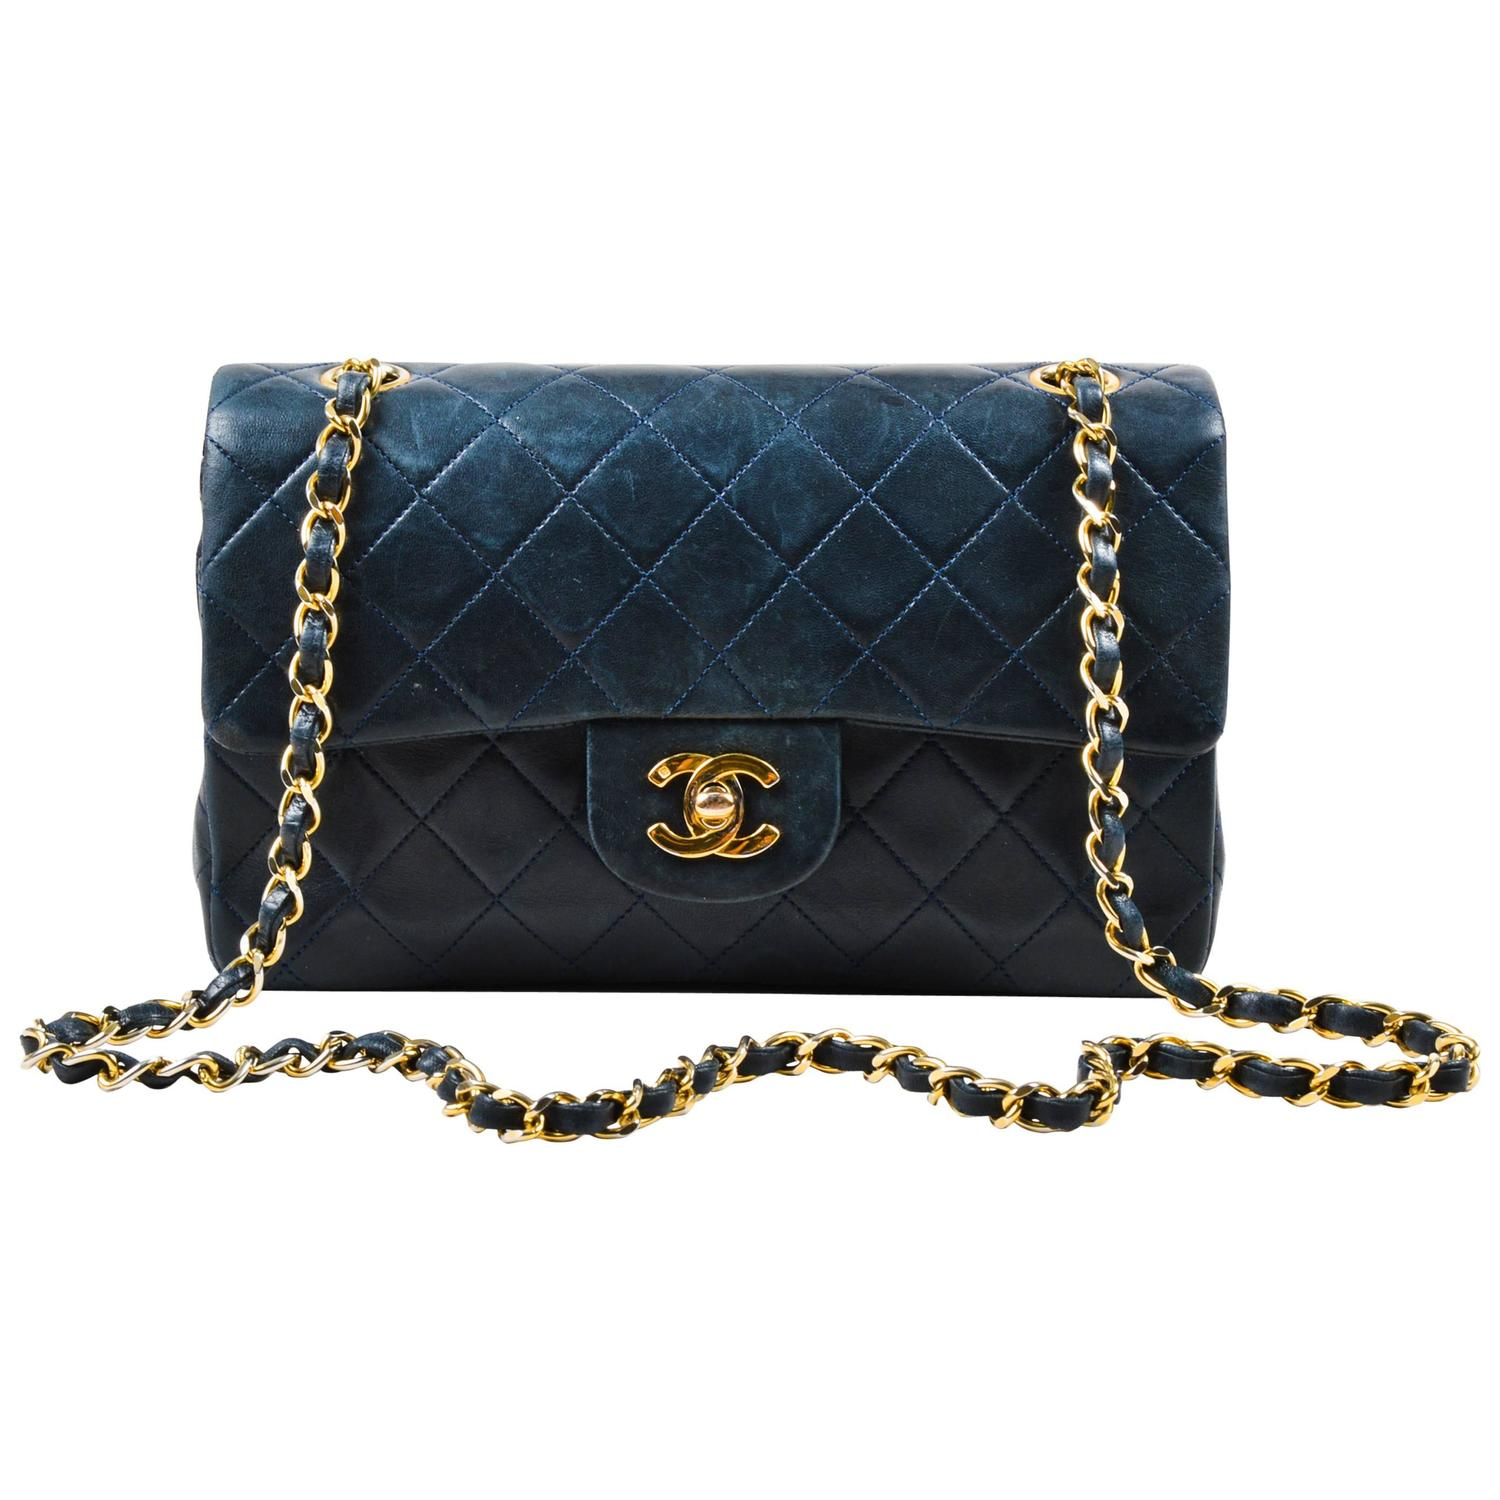 Vintage Chanel Navy Blue Gold Tone Chain Strap Quot Small